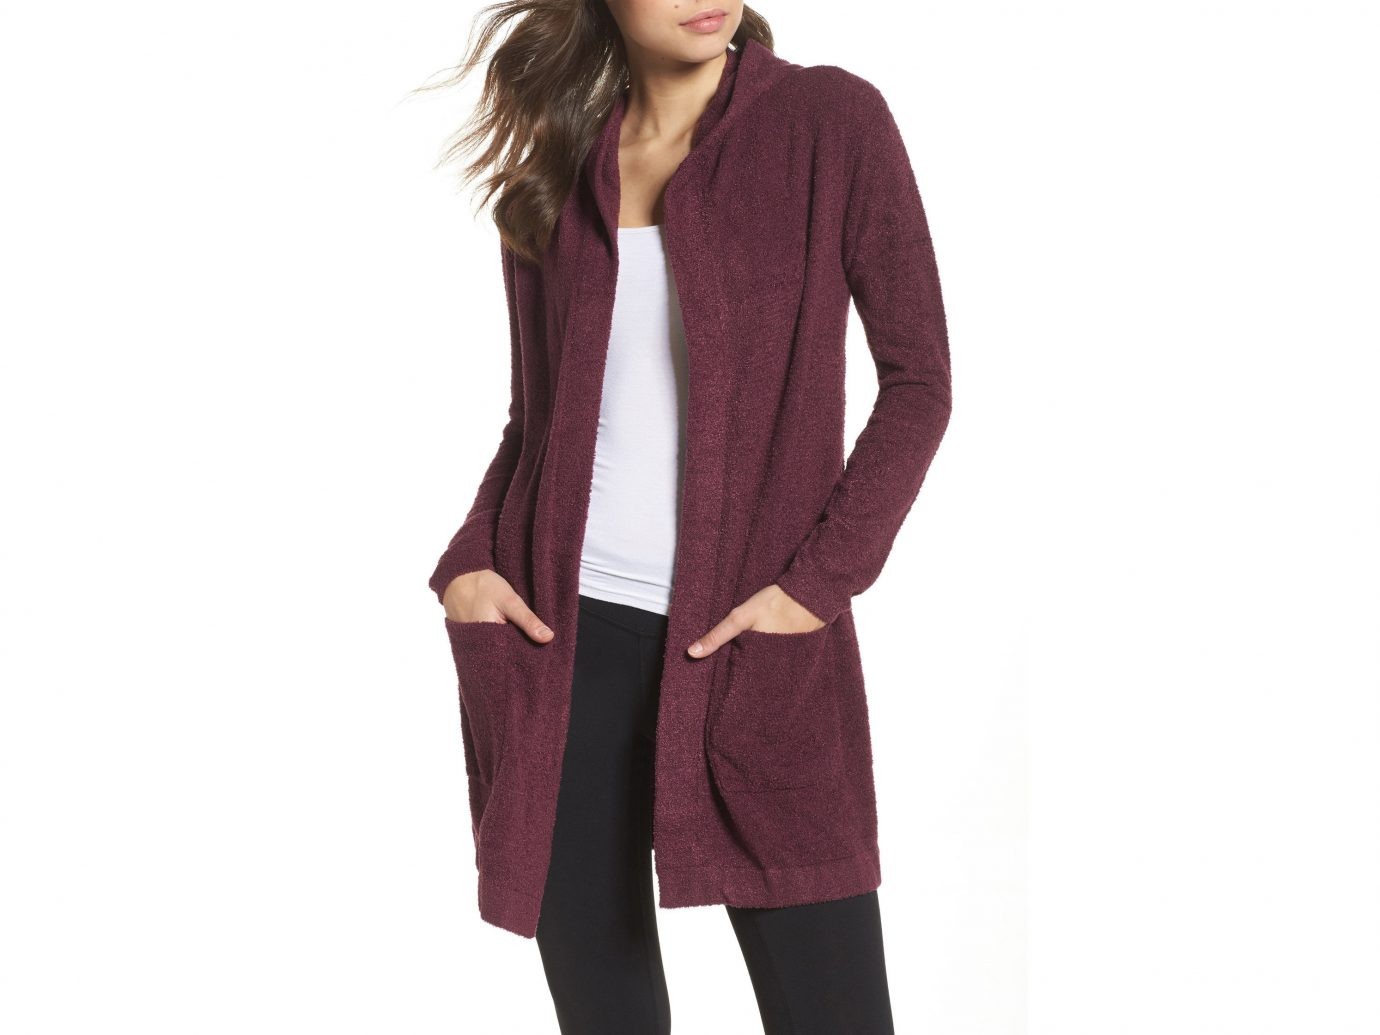 Travel Shop clothing suit wearing posing person standing cardigan outerwear sleeve sweater neck magenta woolen dressed trouser clothes